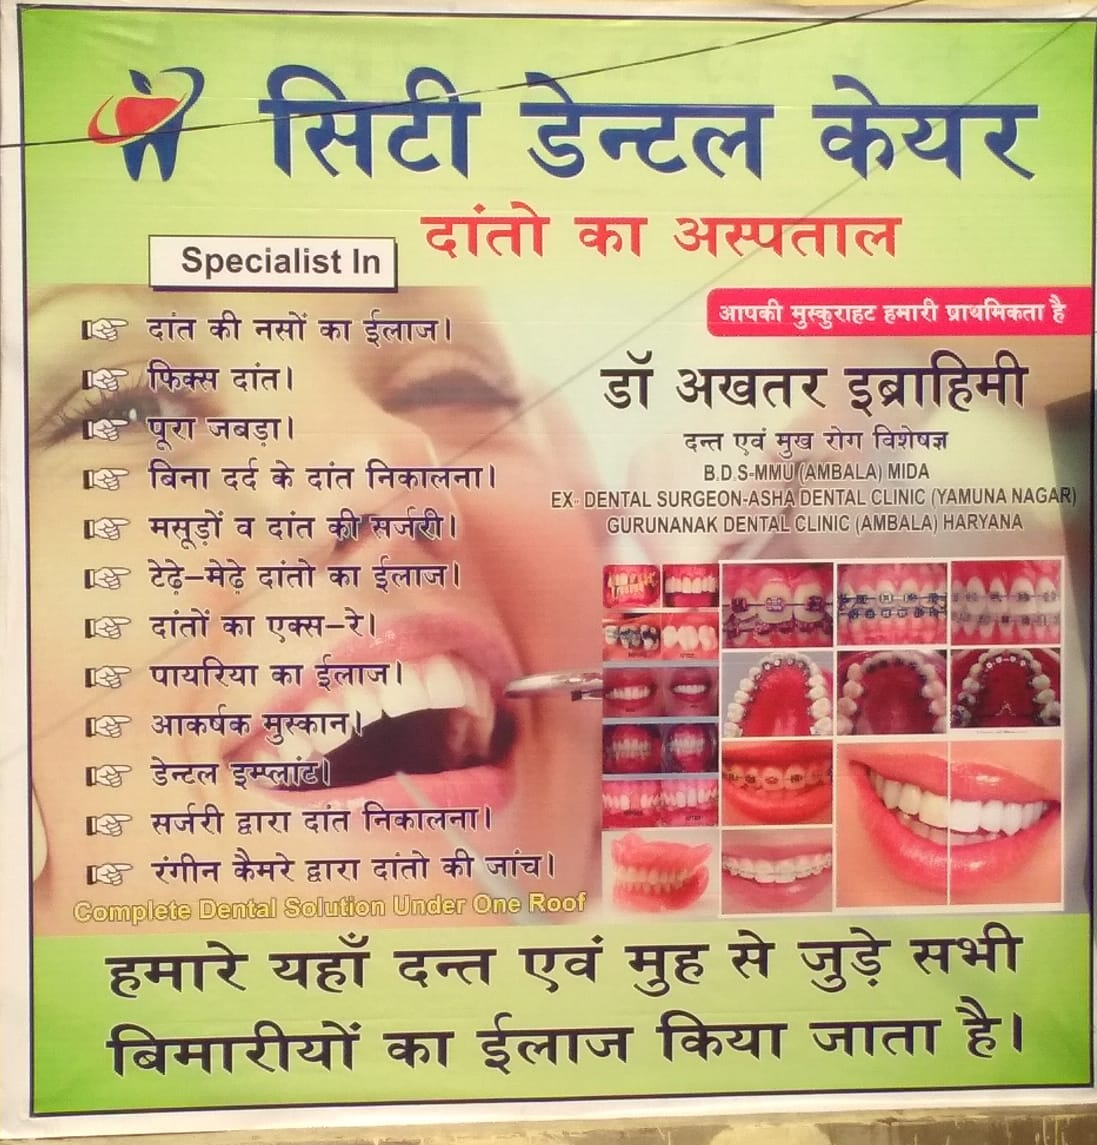 DENTAL CLINIC IN BHURKUNDA